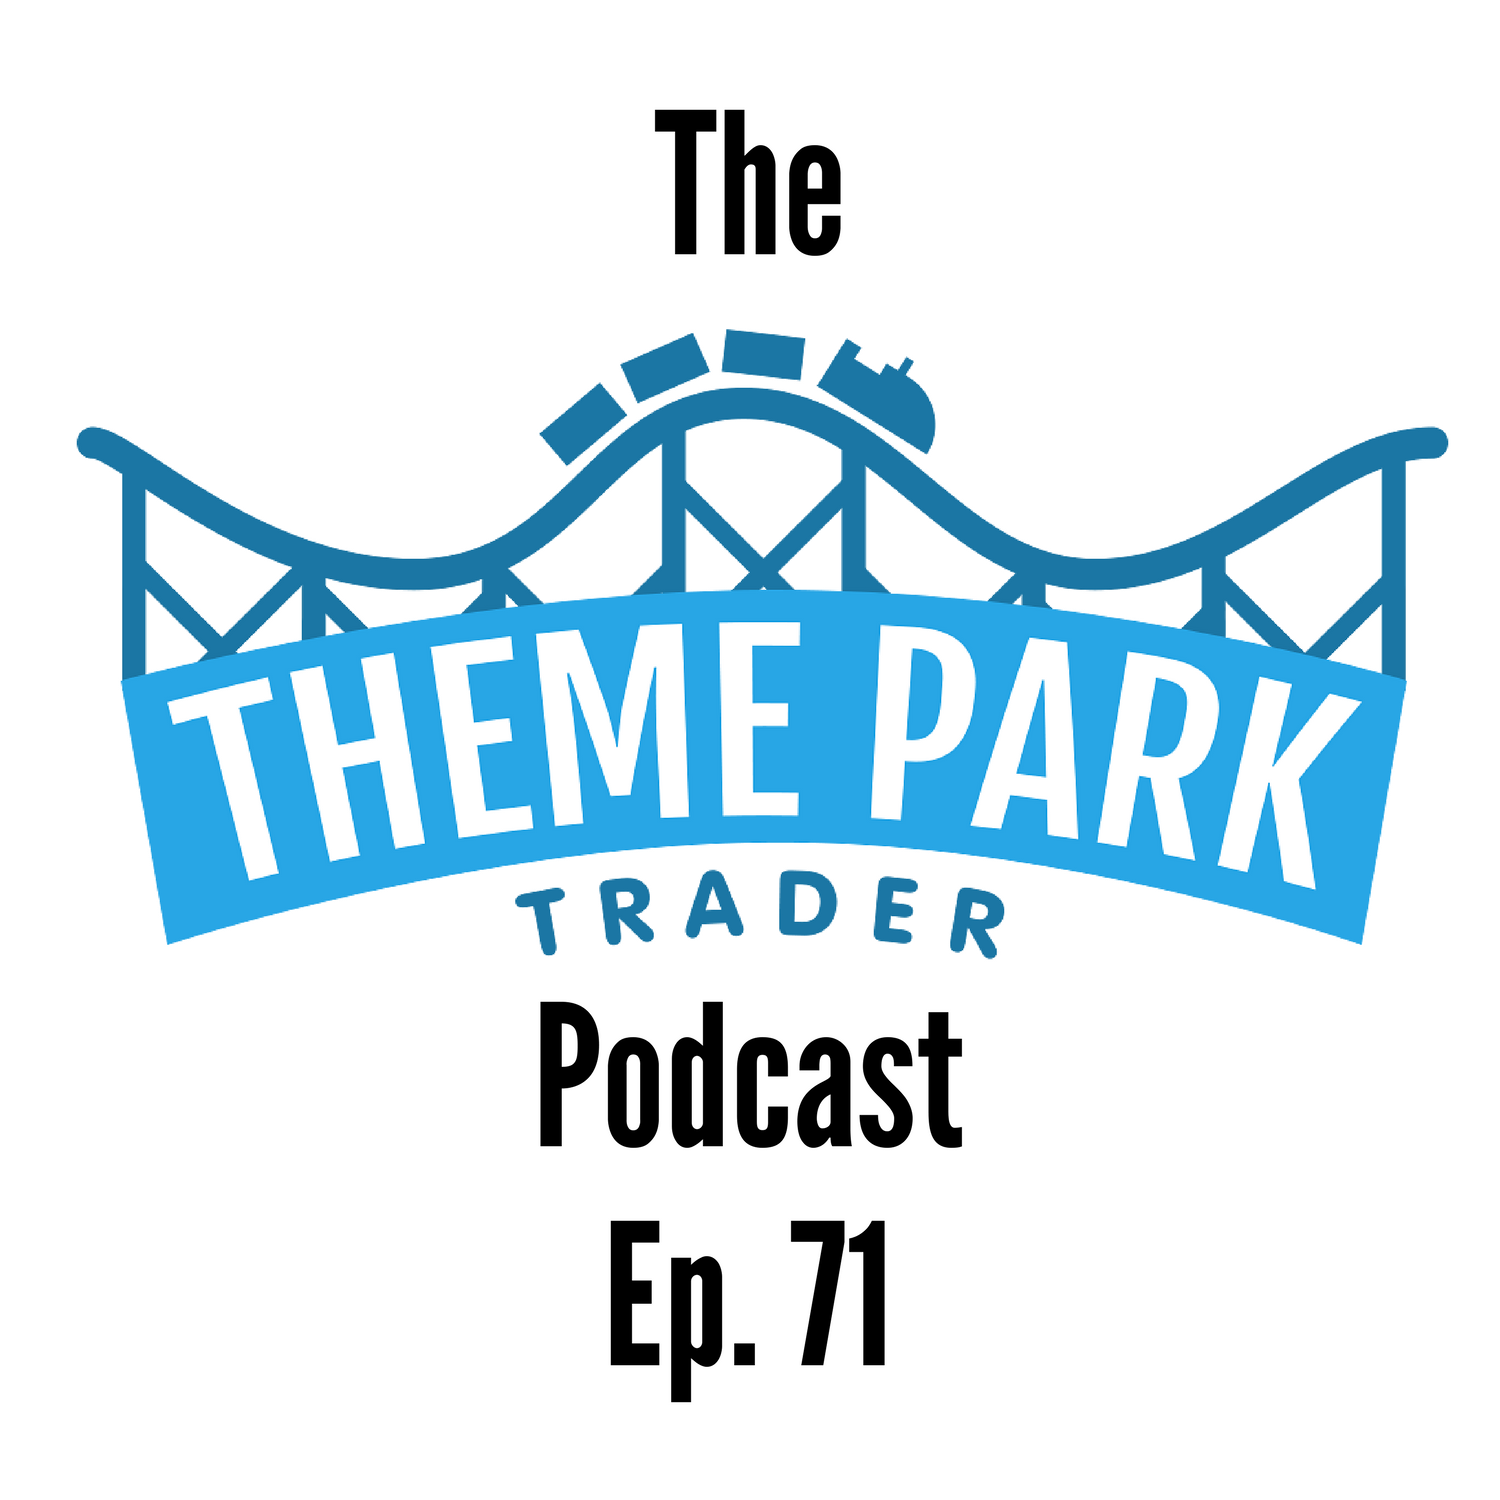 Episode 71 - Disney Movie Magic at DHS, Preferred Parking at Disney Springs, Nighttime Lights at Hogwarts, Poor Reviews of Great Theme Park Restaurants Returns  + More!